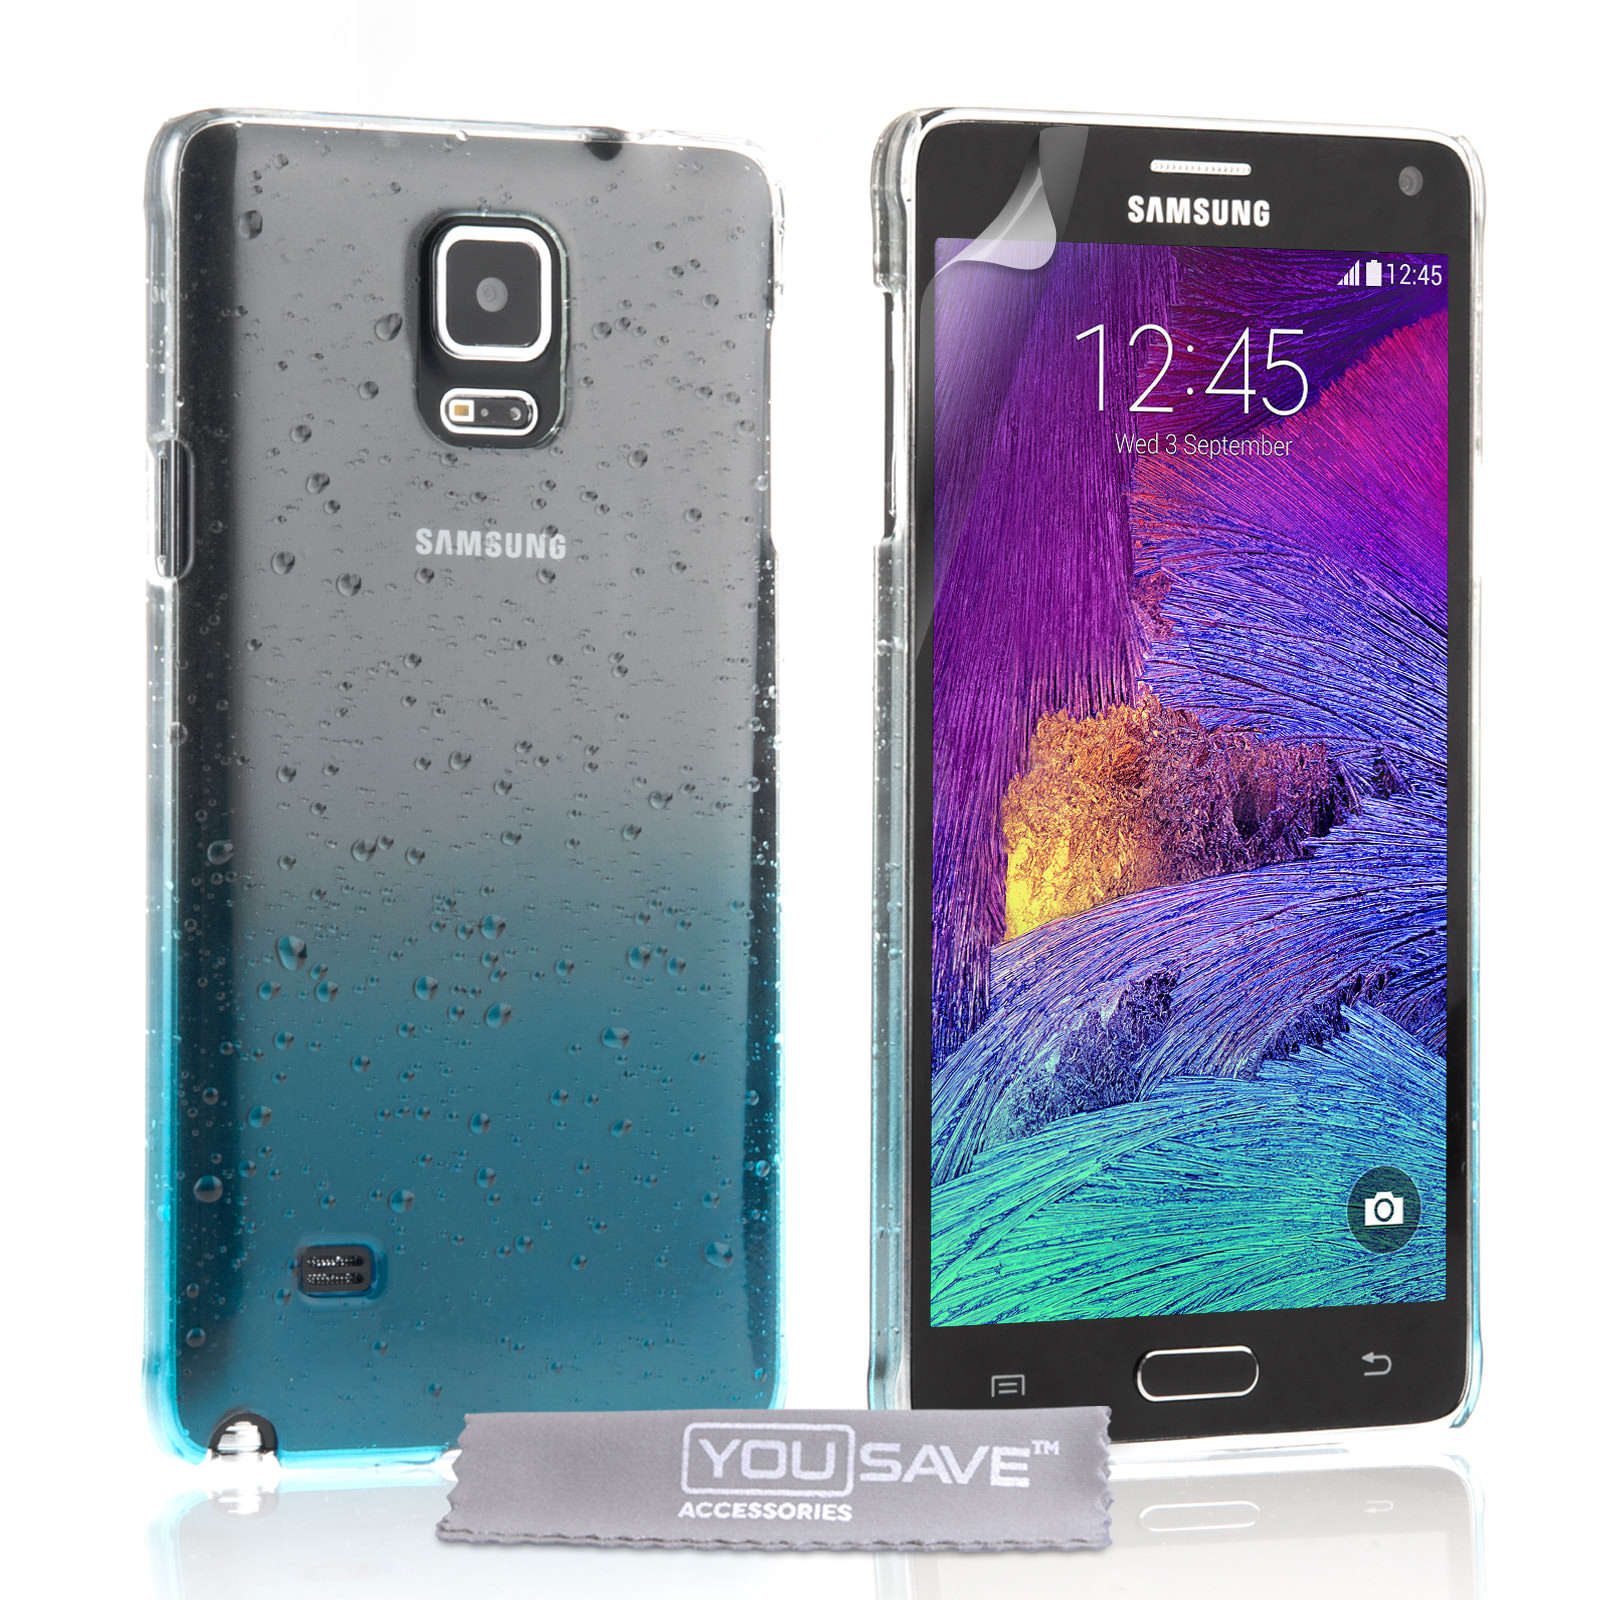 how to clear cookies samsung note 4